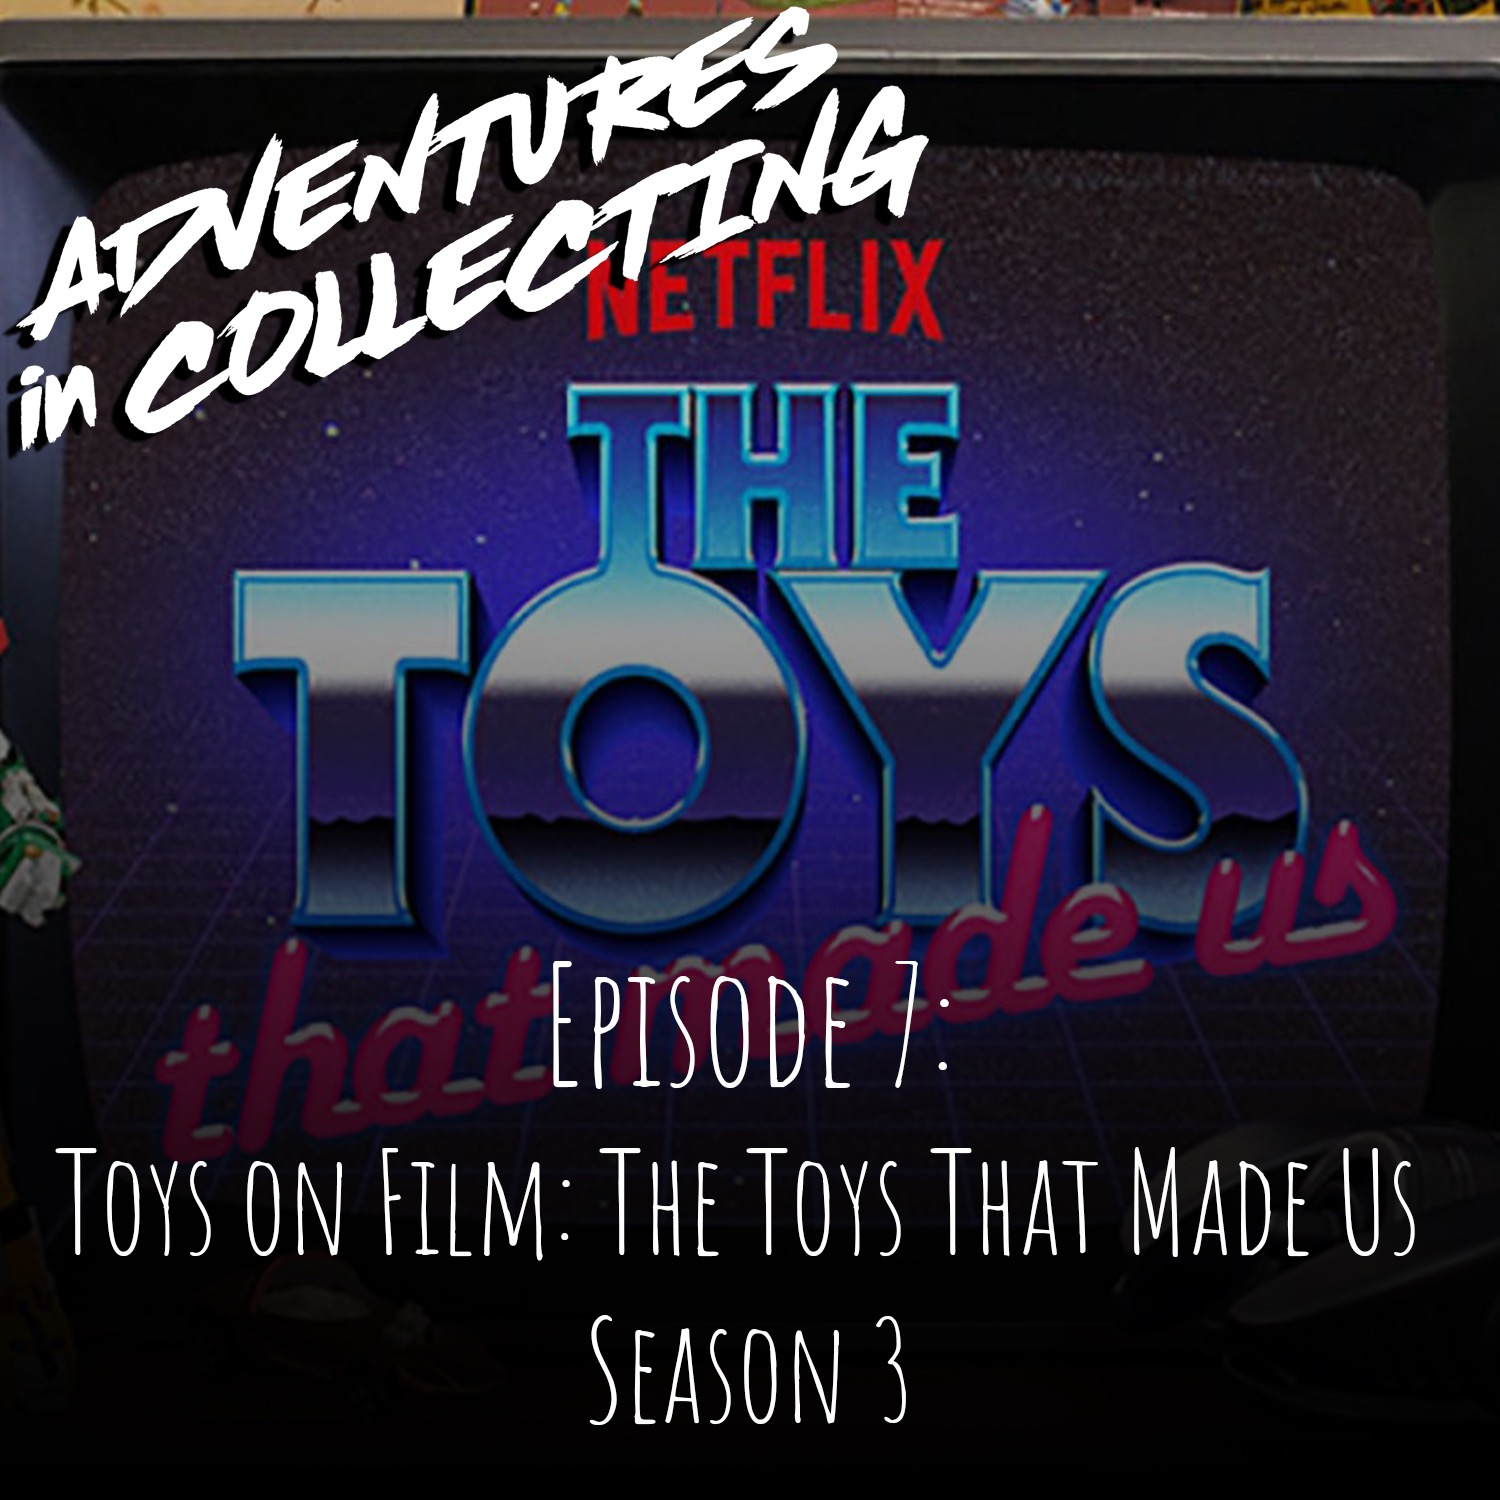 Adventures in Collecting – Toys on Film: Netflix's The Toys That Made Us Season 3